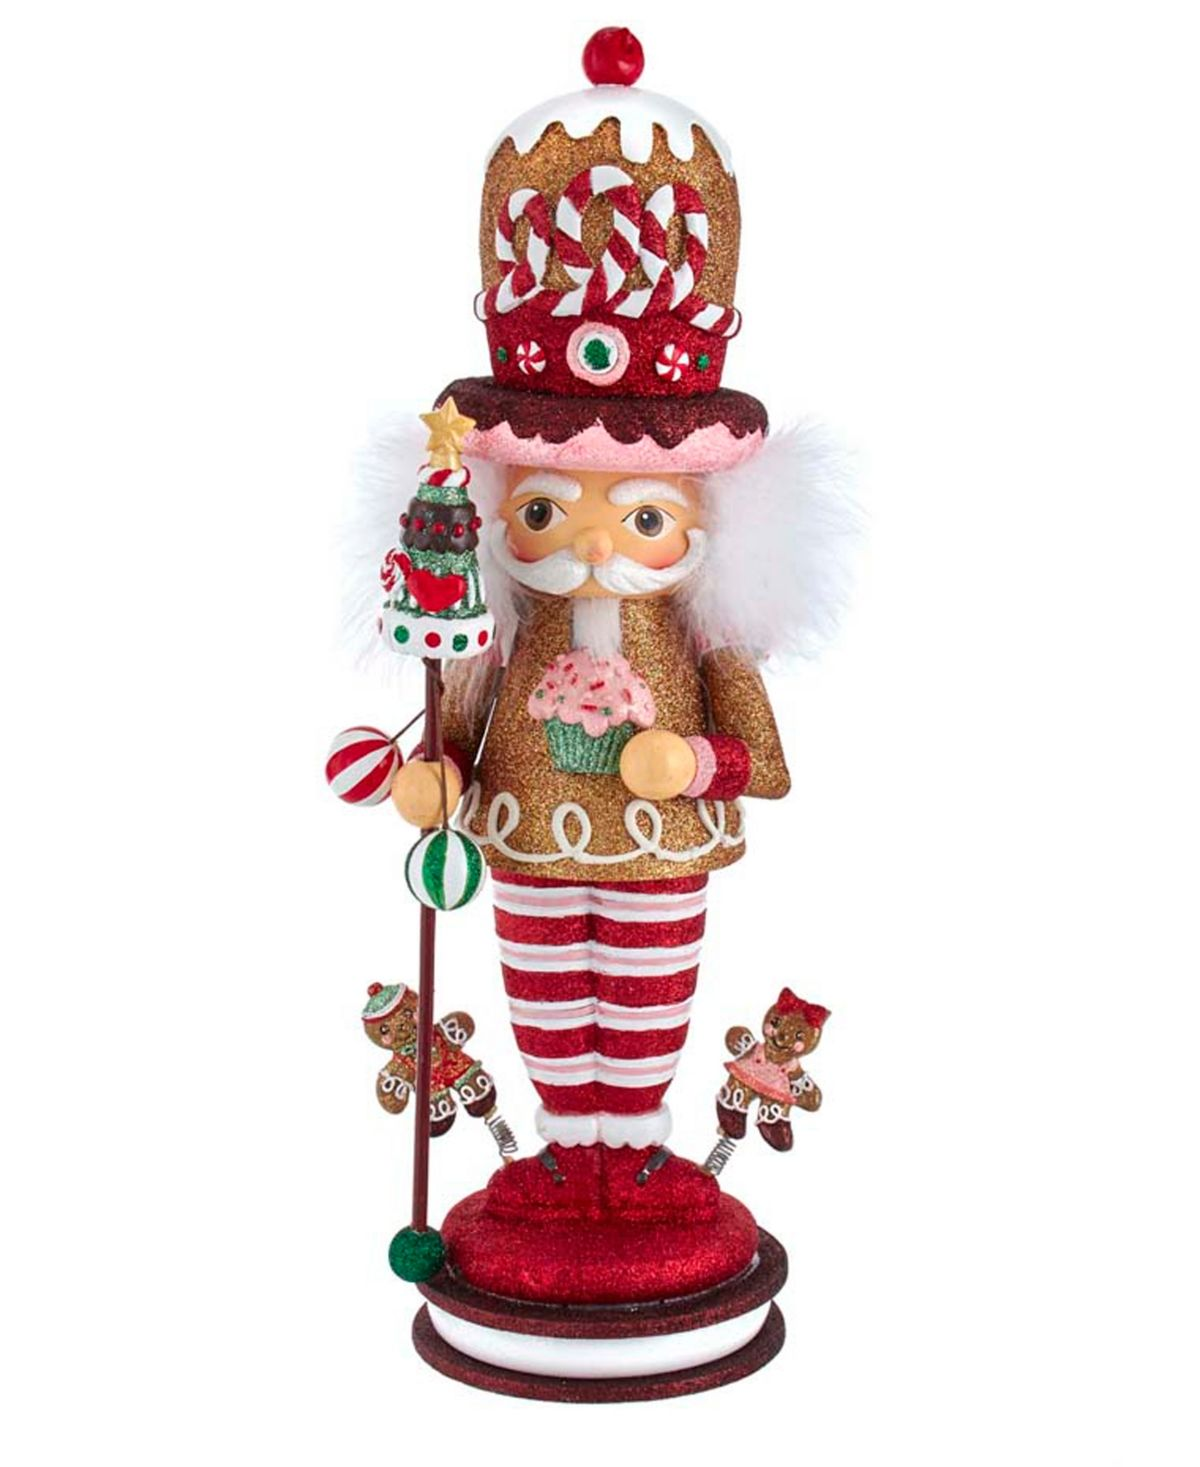 Hollywood nutcrackers is a whimsical collection of nutcrackers. This Hollywood nutcracker is the gingerbread king stands on top of a cookie sandwich with little gingered boy and girl by his side. He is holding a cupcake in his right hand and sweet Christmas tree in his left.